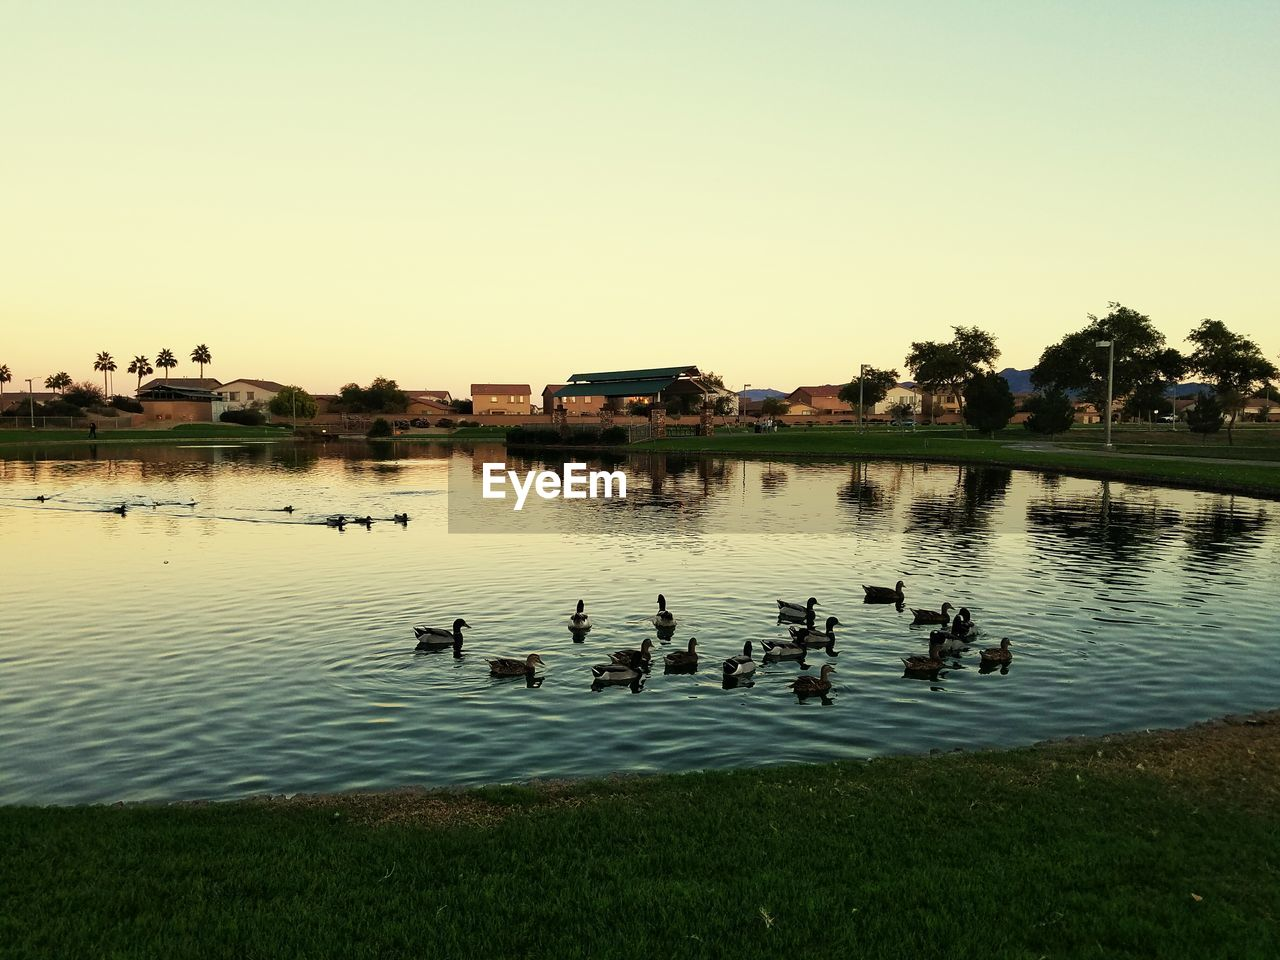 bird, animals in the wild, water, large group of animals, animal themes, lake, animal wildlife, reflection, flock of birds, nature, outdoors, no people, clear sky, goose, water bird, waterfront, swimming, sunset, geese, day, beauty in nature, tree, sky, swan